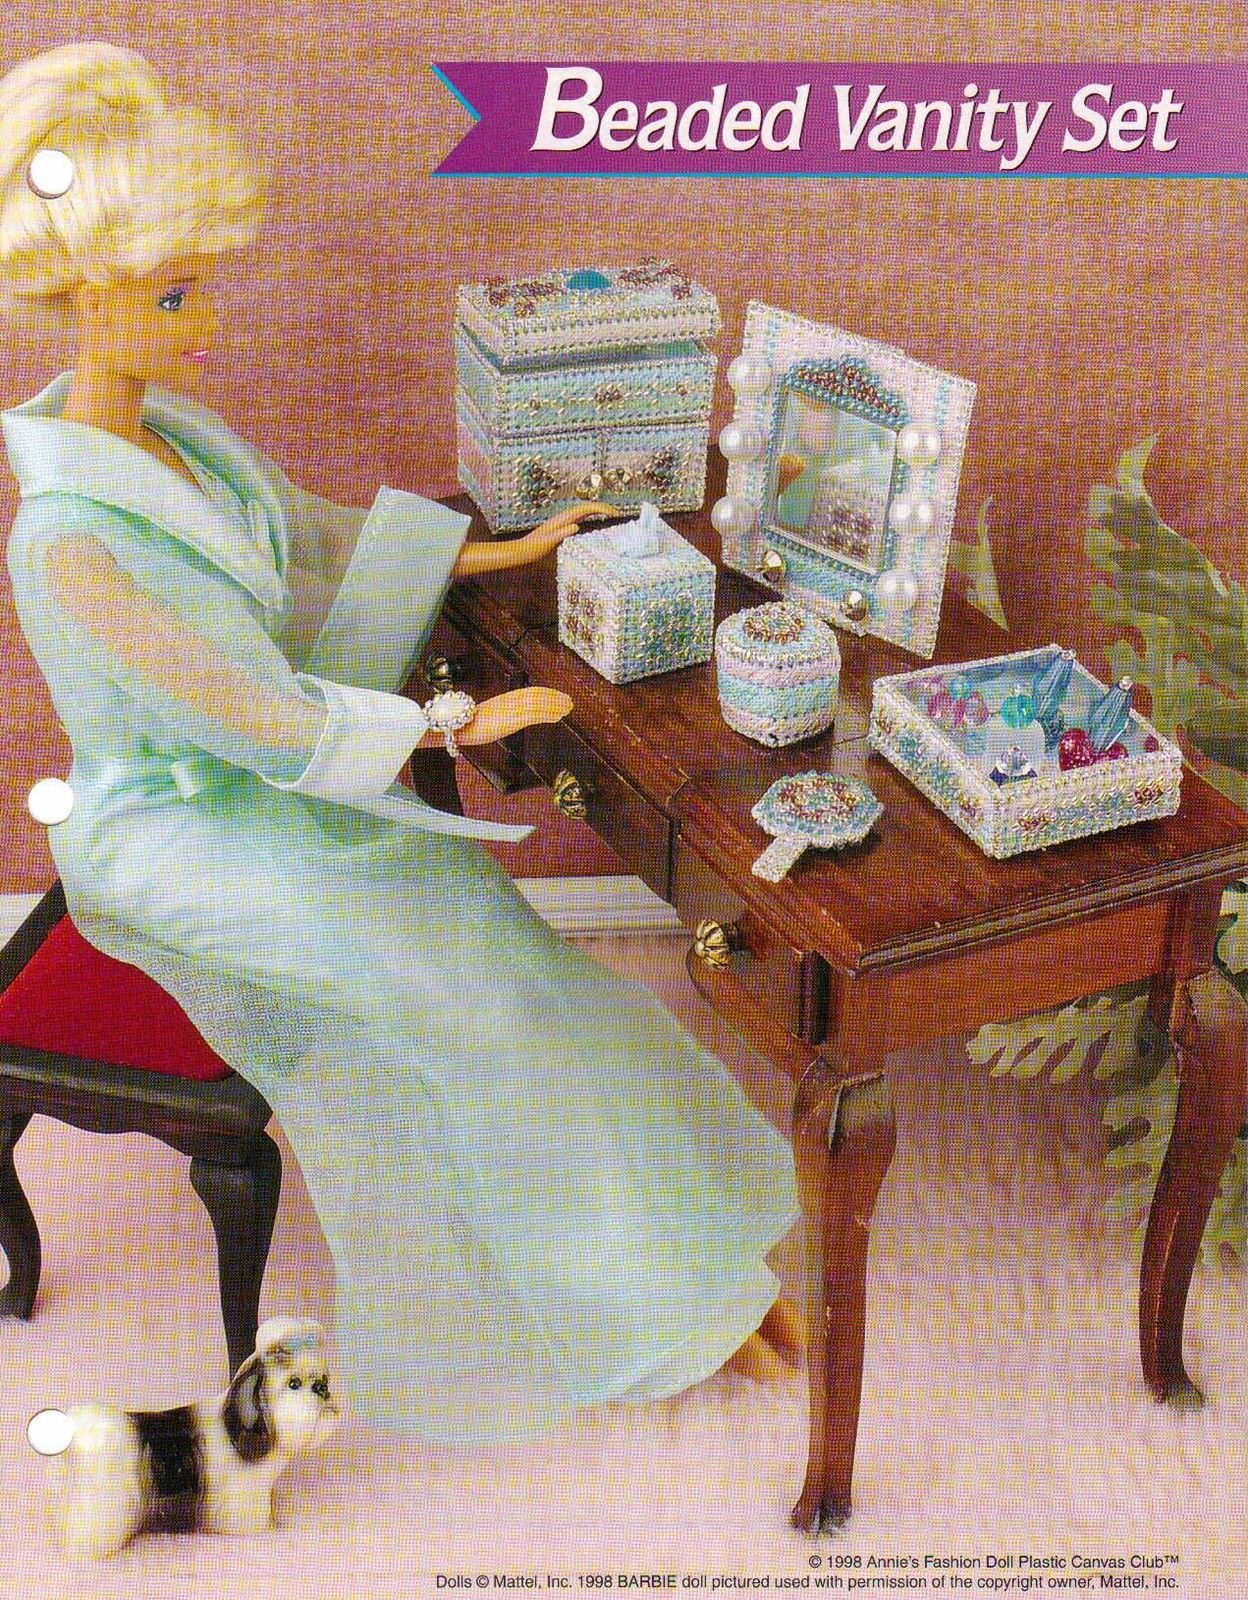 BEADED VANITY SET PLASTIC CANVAS PATTERN LEAFLET BY ANNIES FASHION DOLL RARE picclick.com